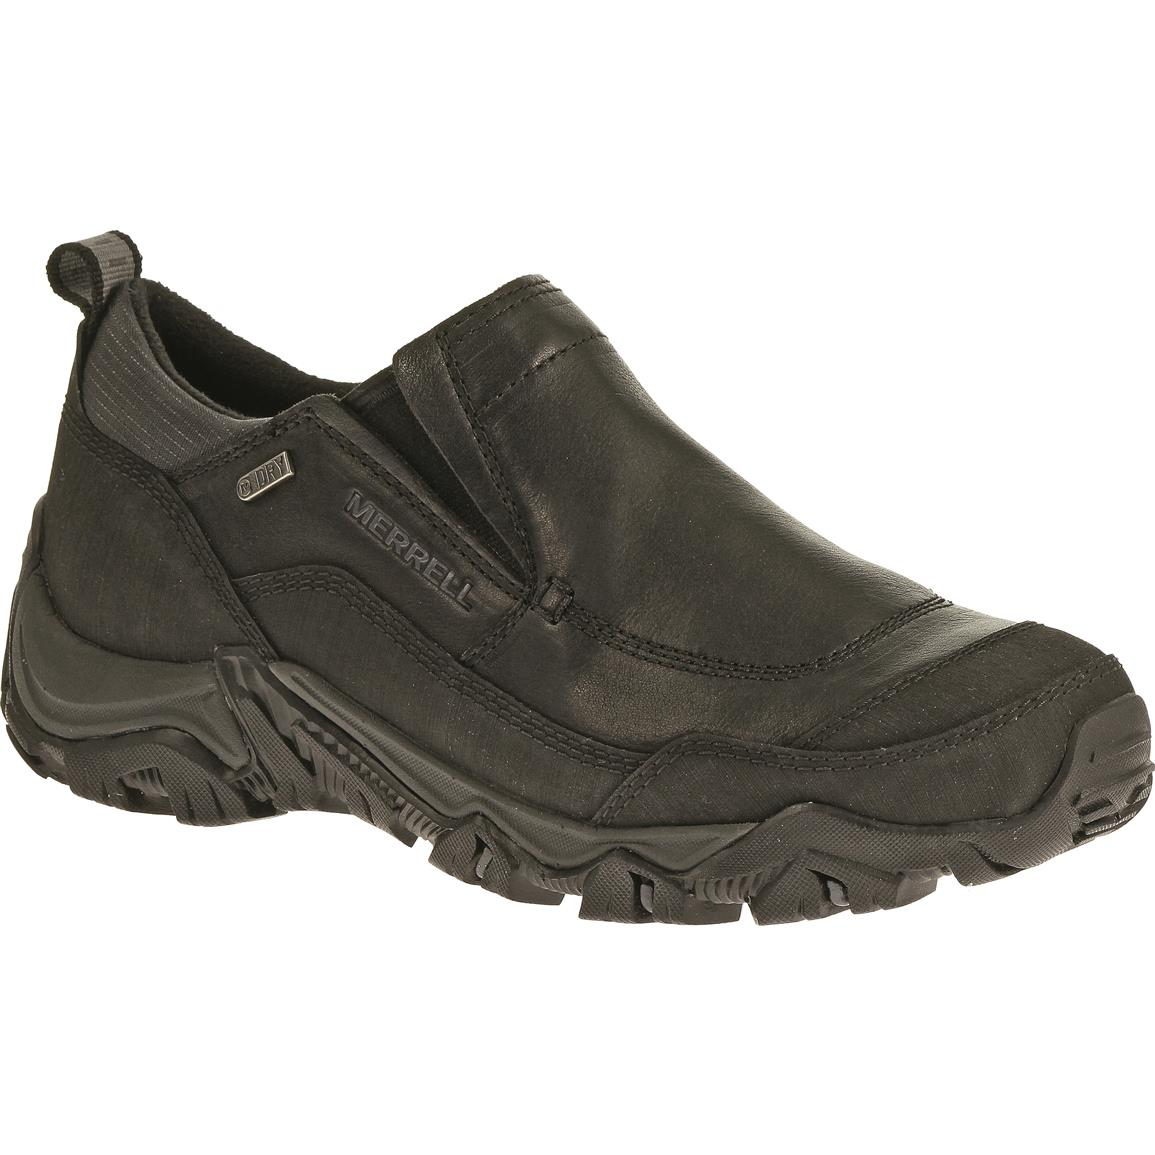 Merrell Polarand Rove Waterproof Moc Toe Slip-on Shoes, Black